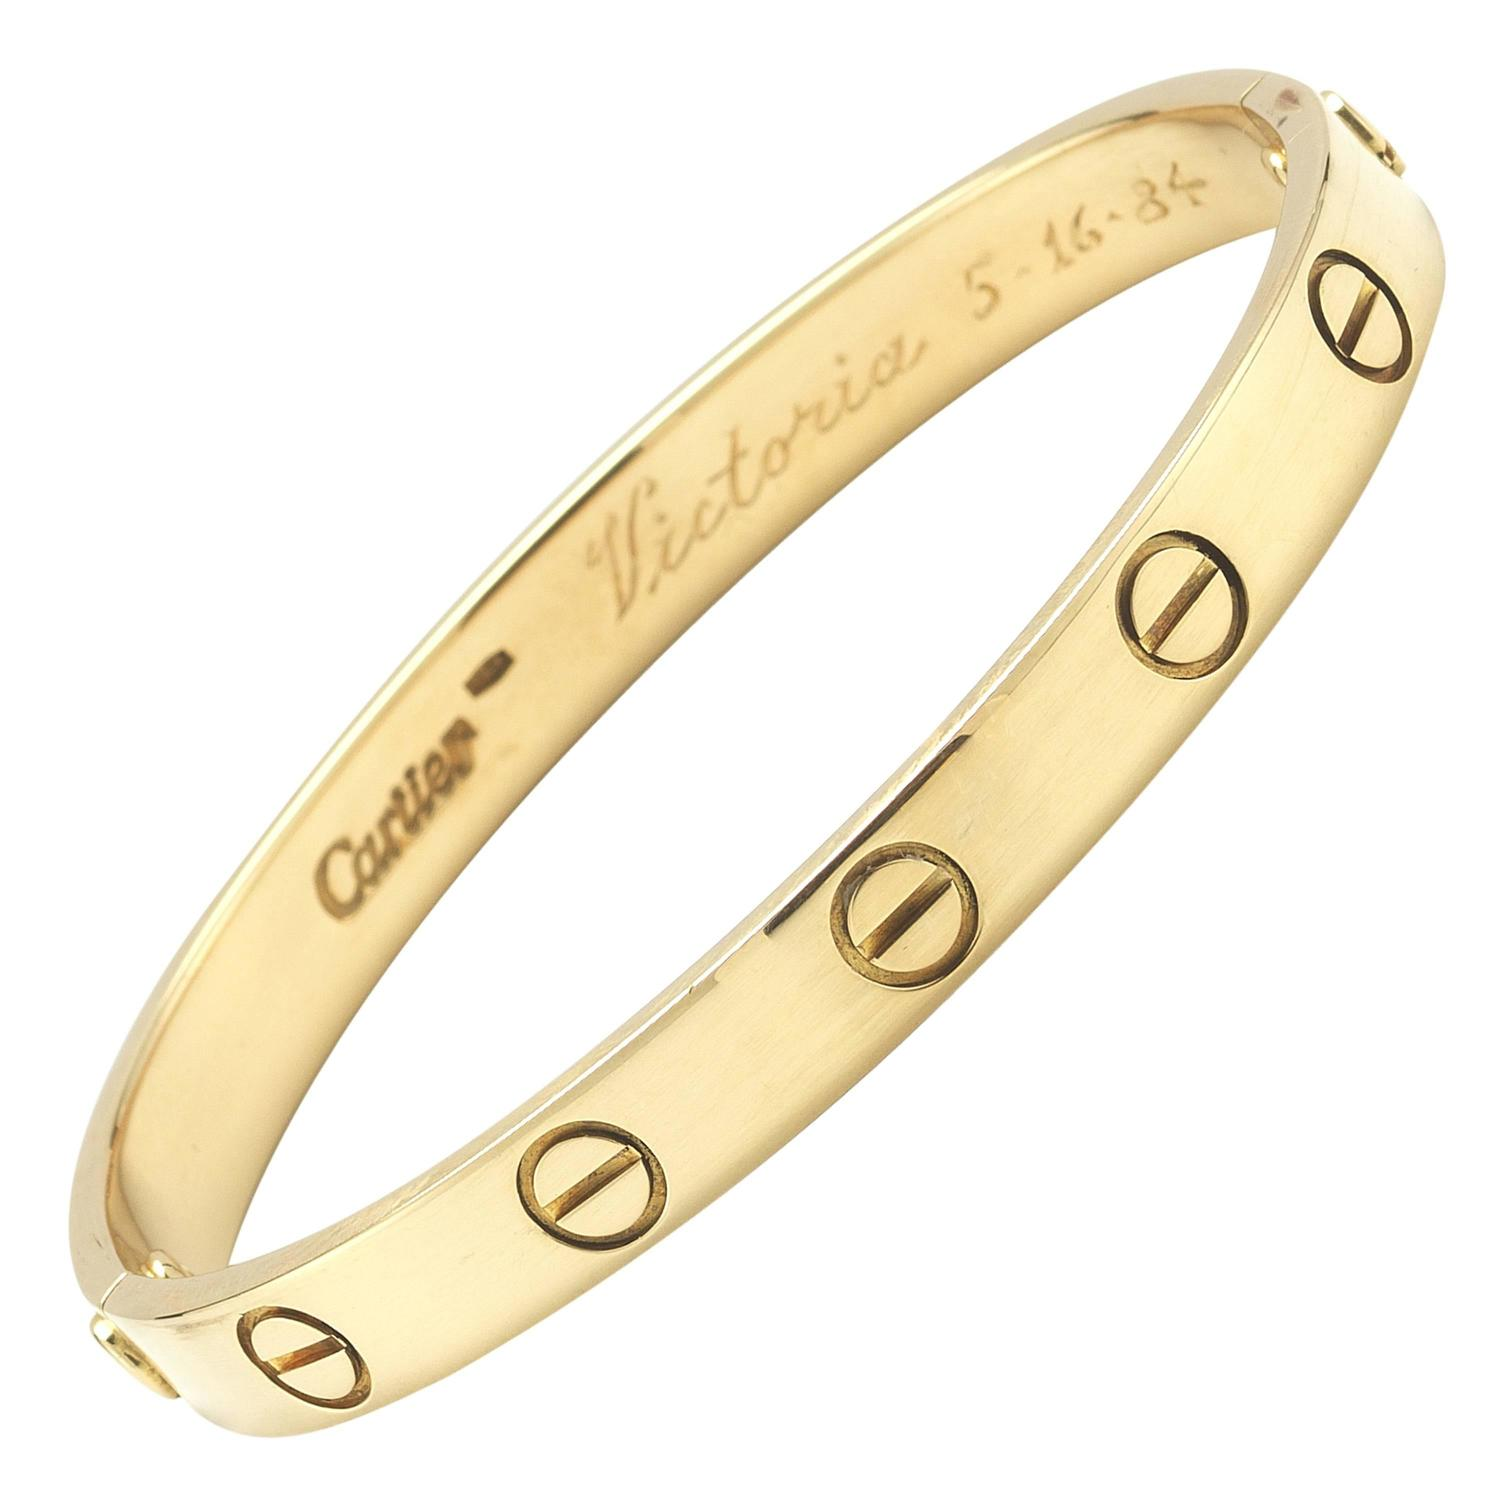 Cartier Love Bracelet Yellow Gold Size 16 At 1stdibs